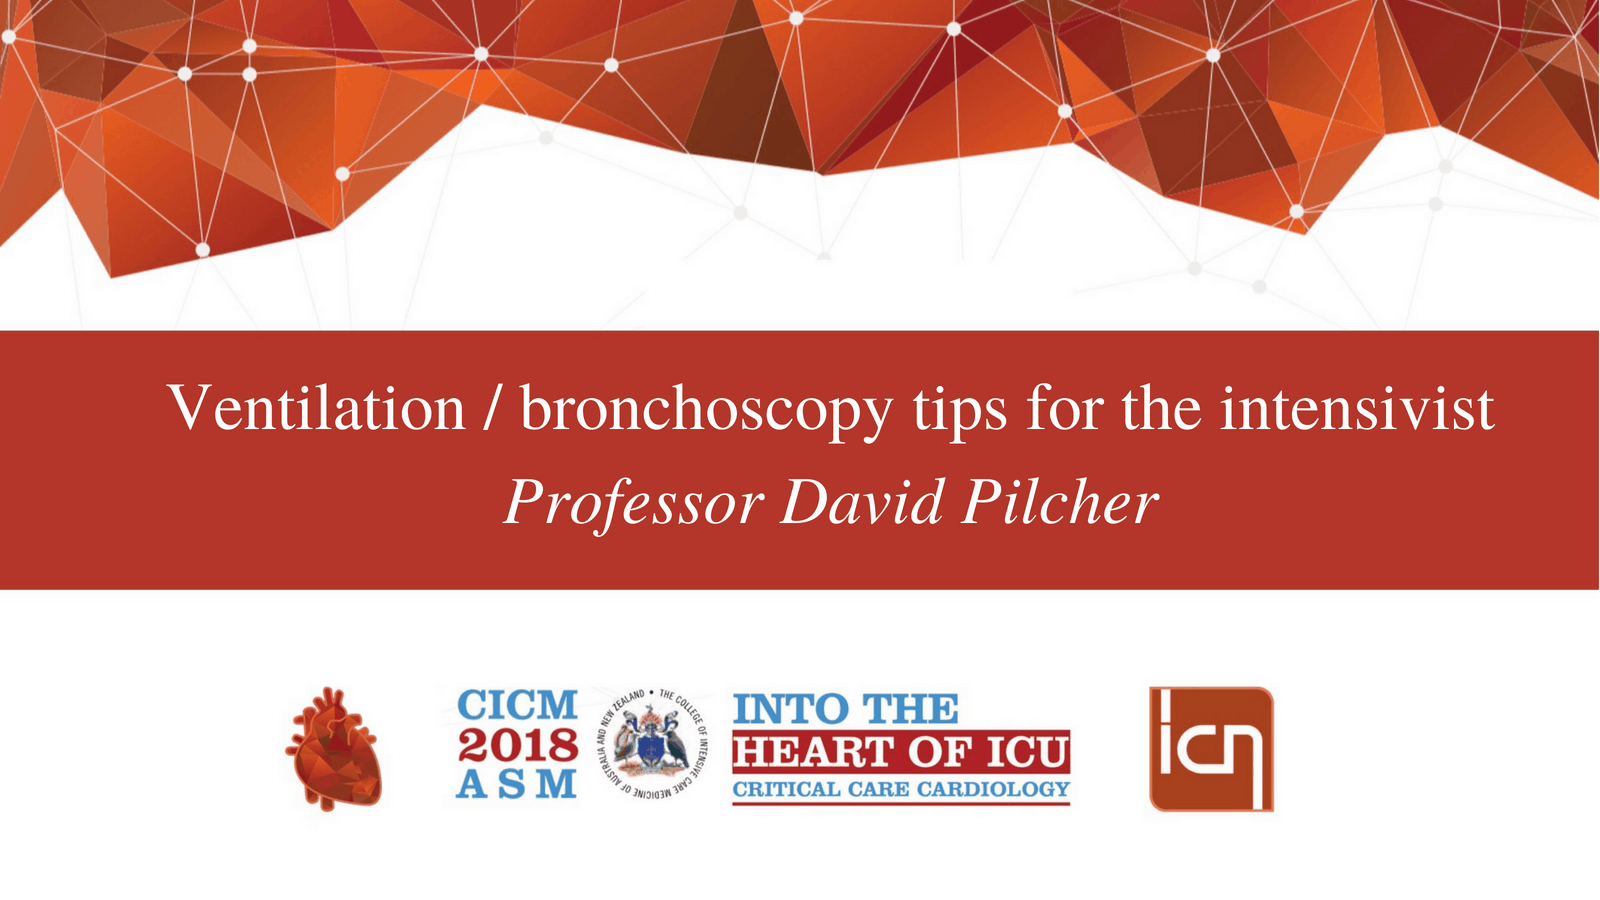 Ventilation / bronchoscopy tips for the intensivist